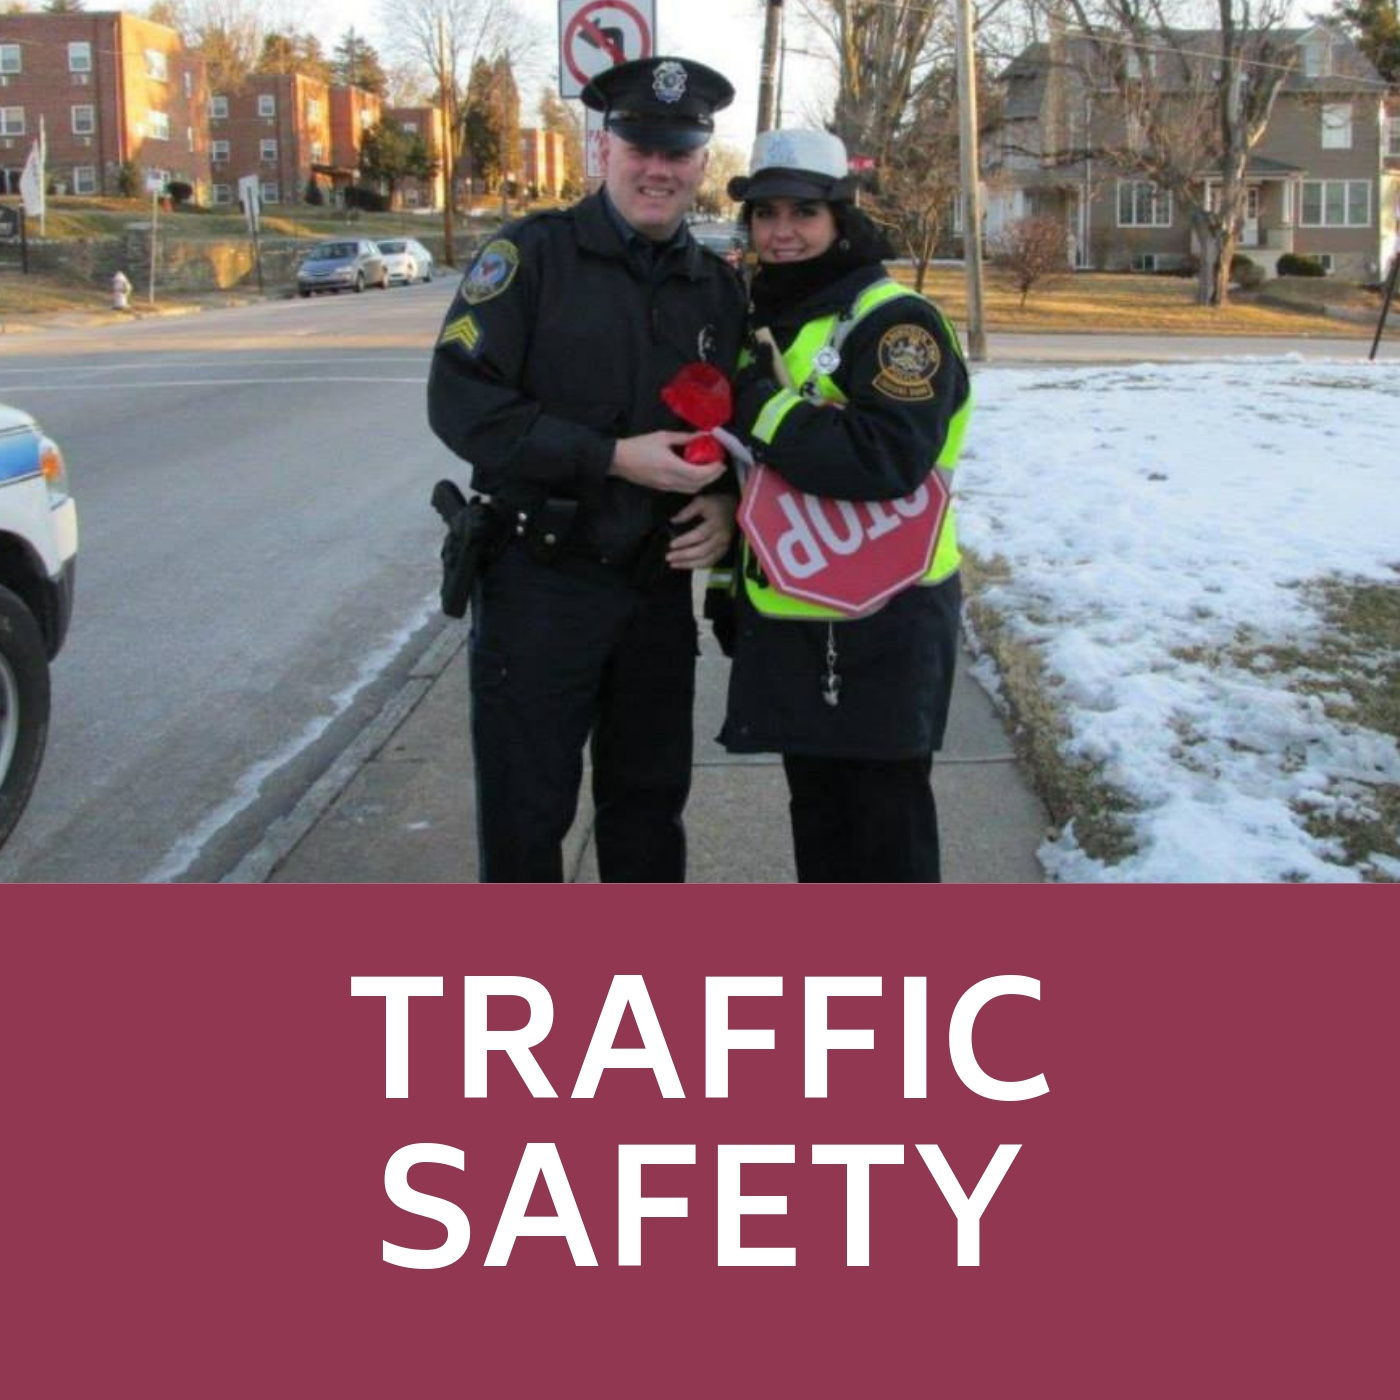 Crossing guard and police officer that links to traffic safety information